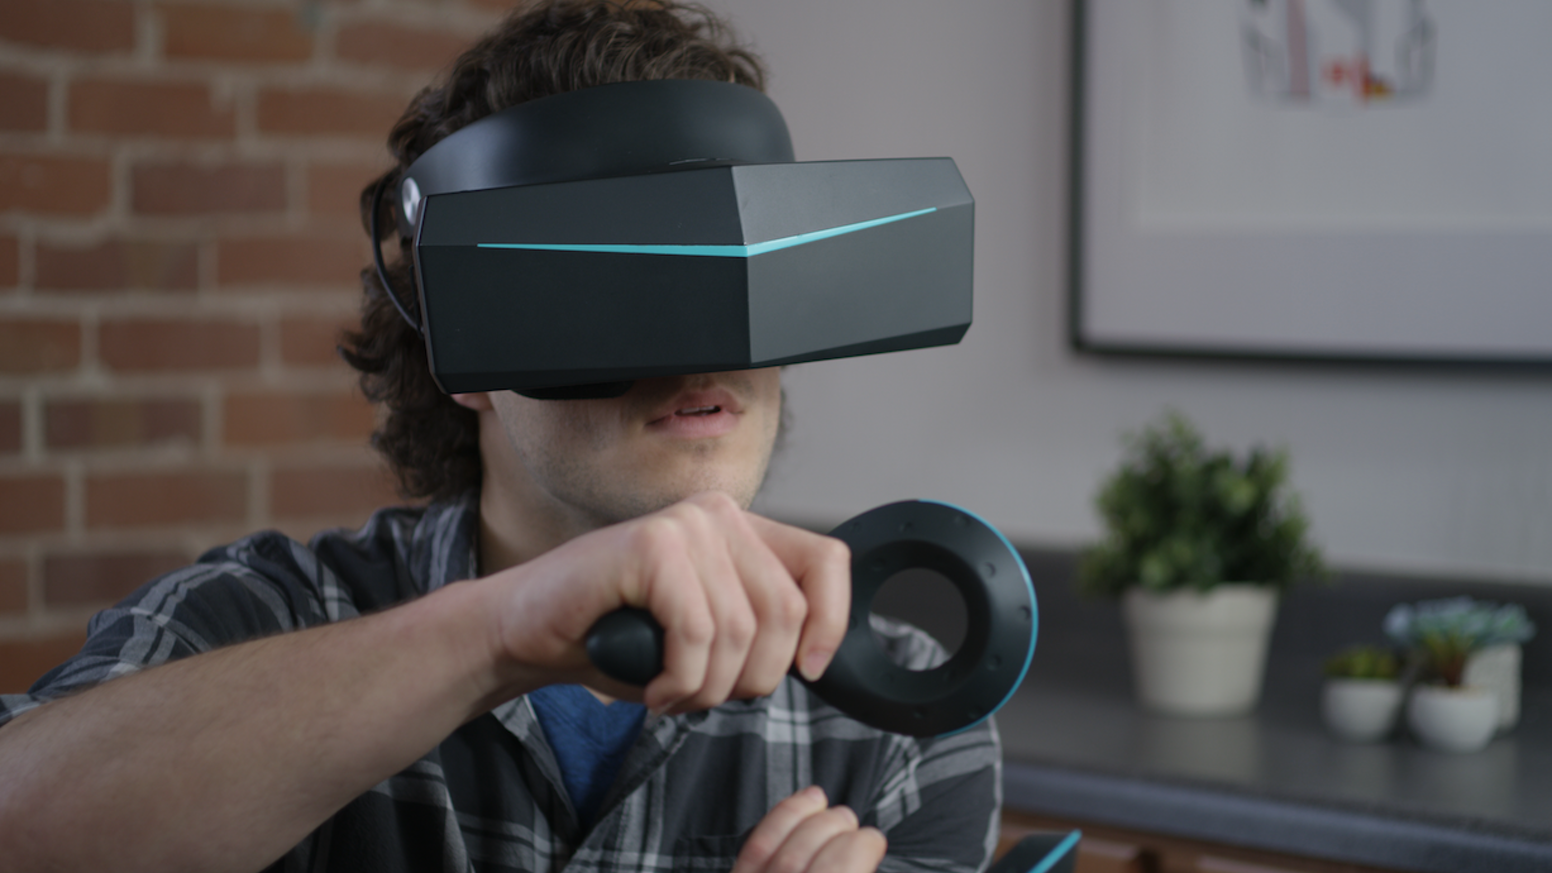 The Pimax 8K VR headset, that is slated to be released in 2018, is sleeker than the average VR headset. Source: Kickstarter/Pimax